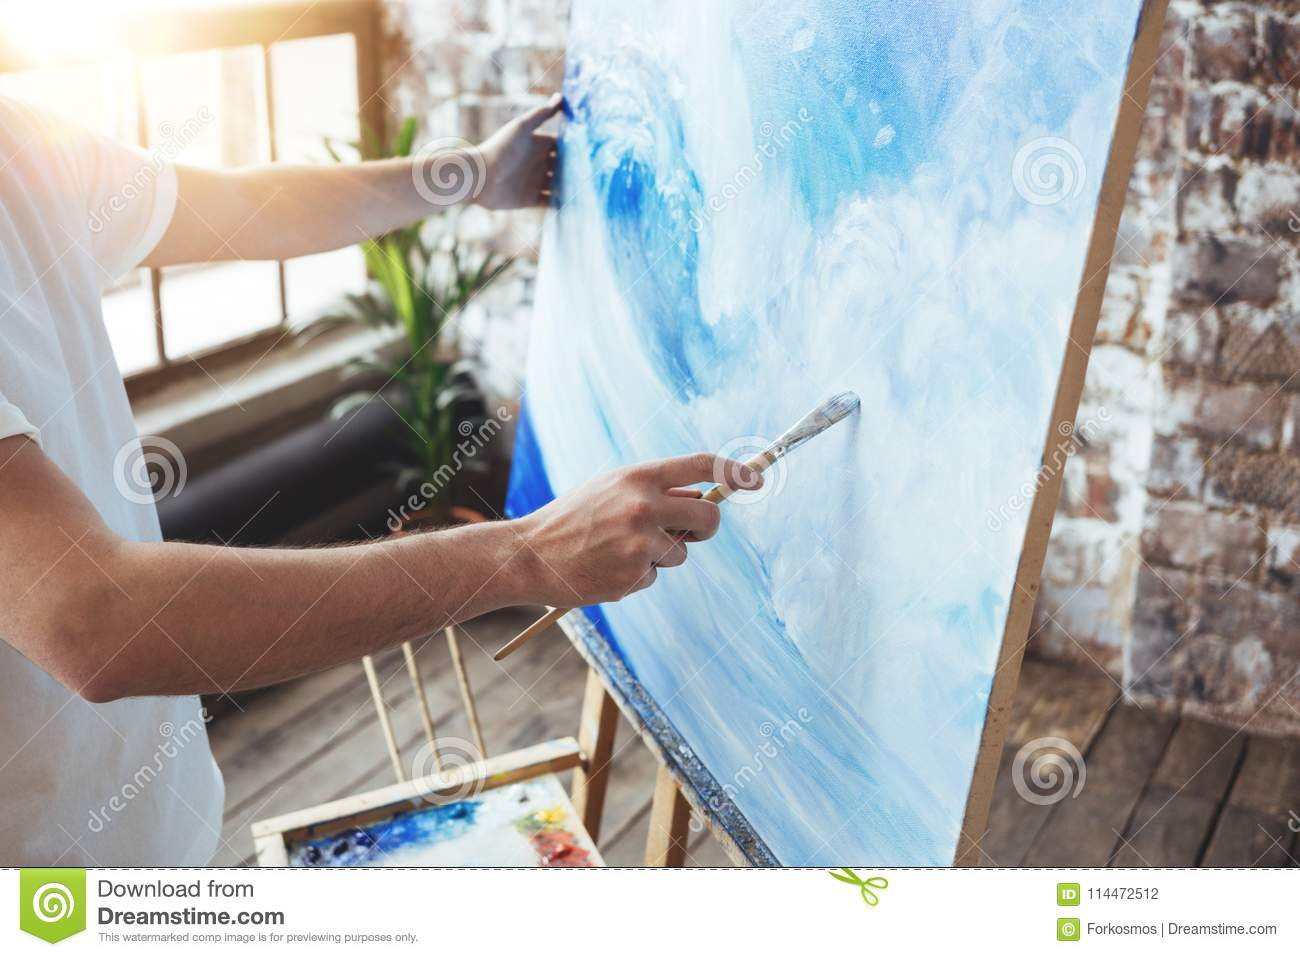 Process of drawing an artist work in art loft studio with oilpaints. Painter hold paintbrush in hand in front of canvas on easel